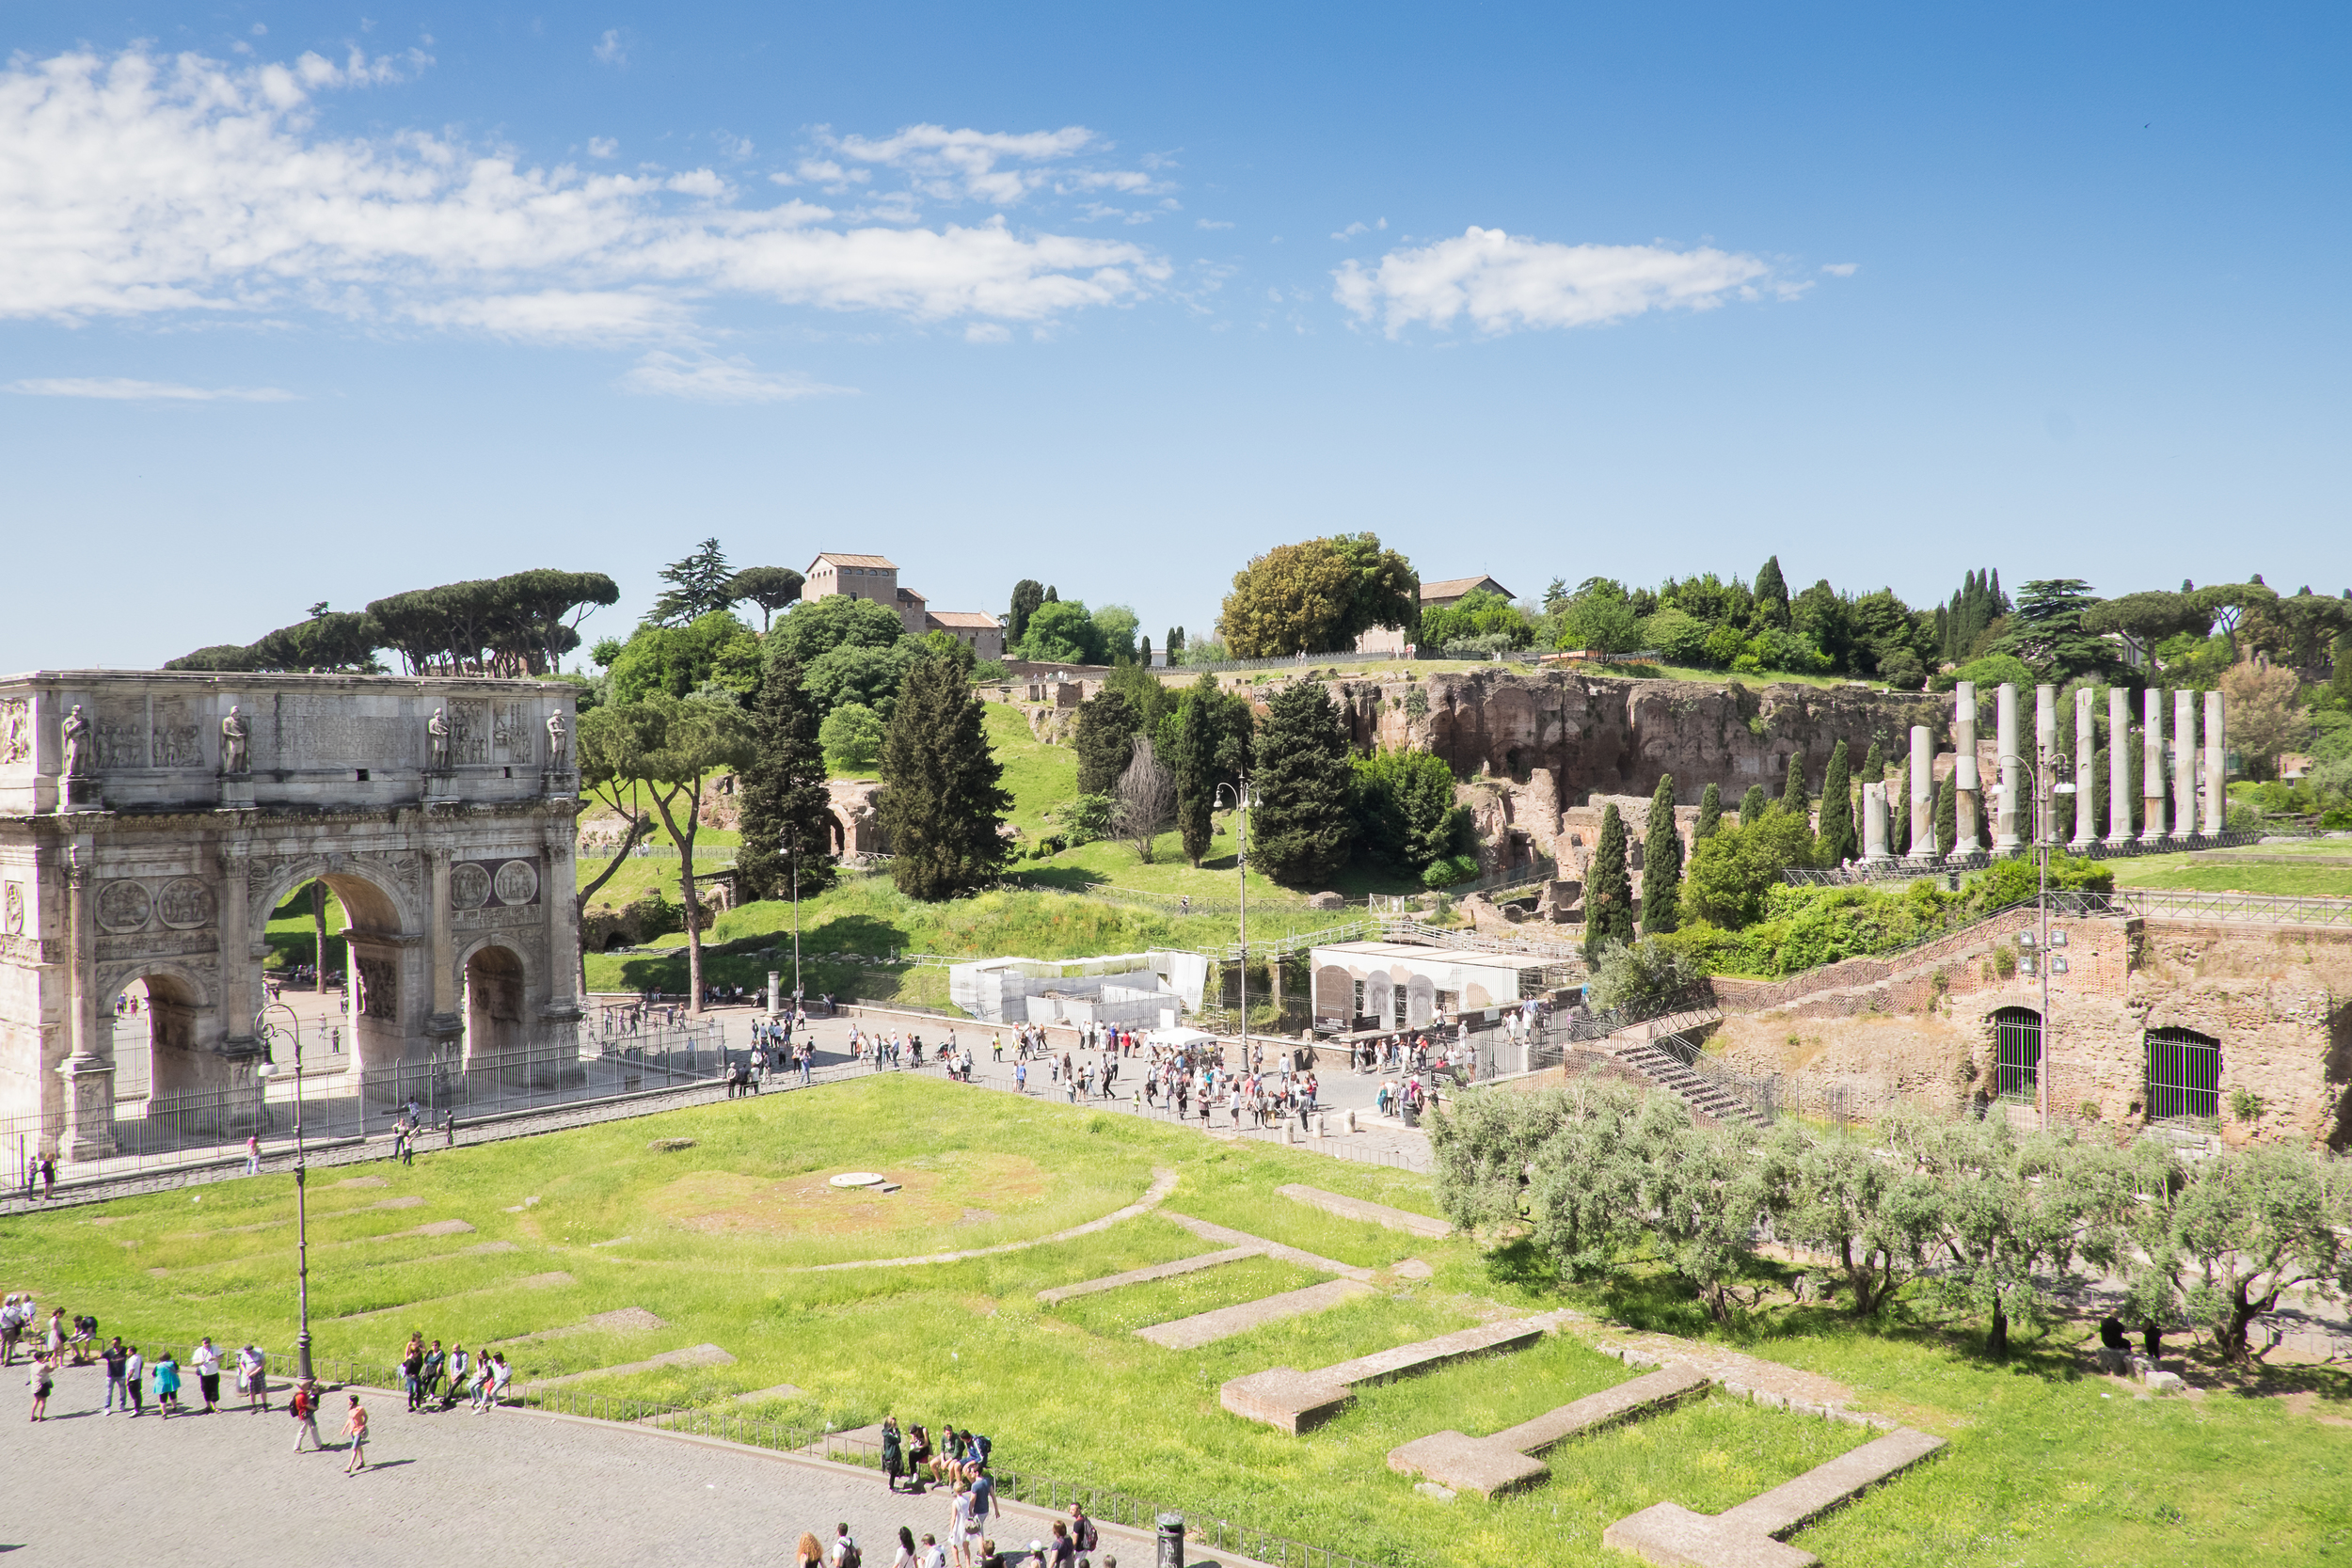 Arch of Titus and Temple Ruins